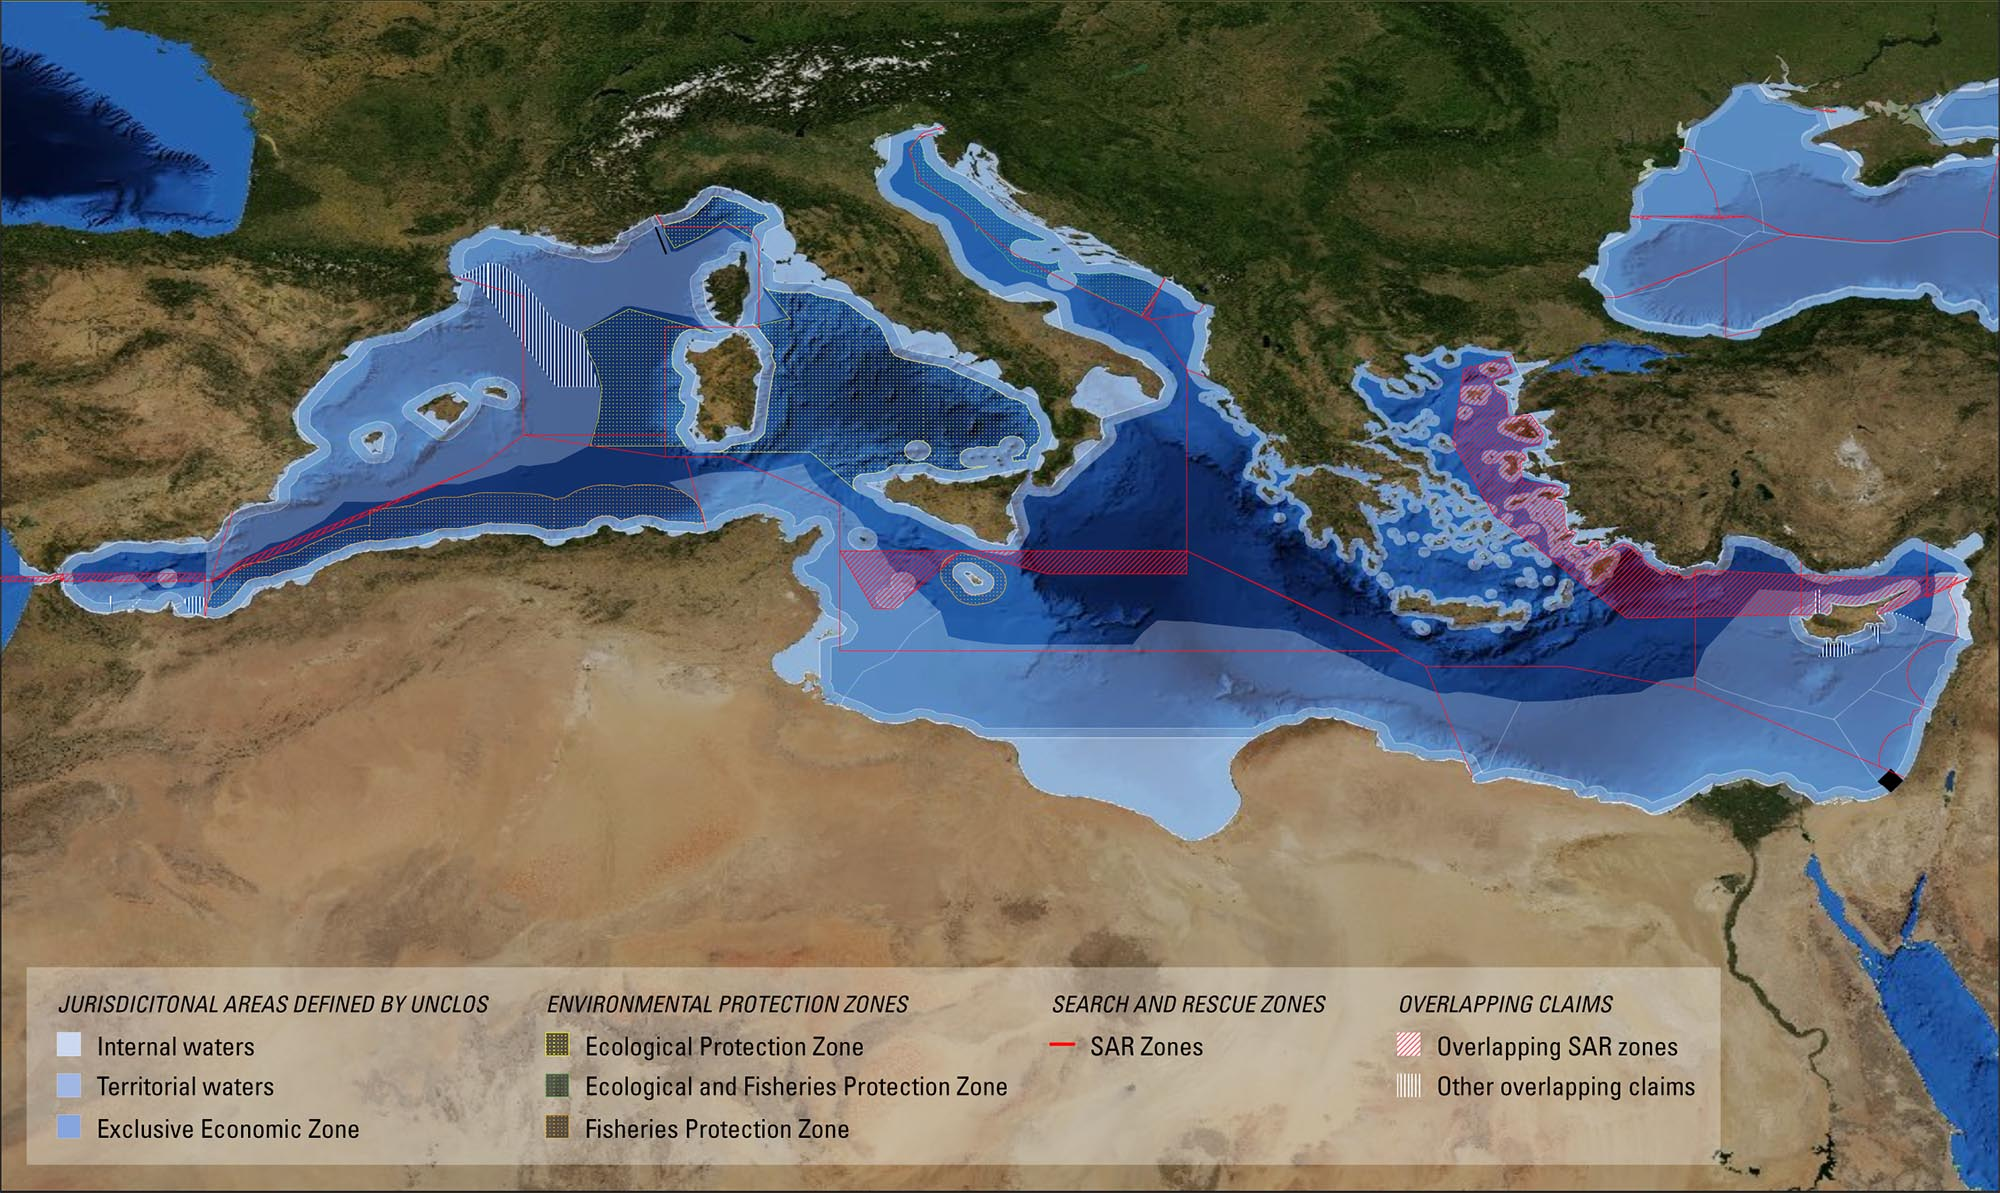 Maritime jurisdictions in the Mediterranean. (Forensic Oceanography)